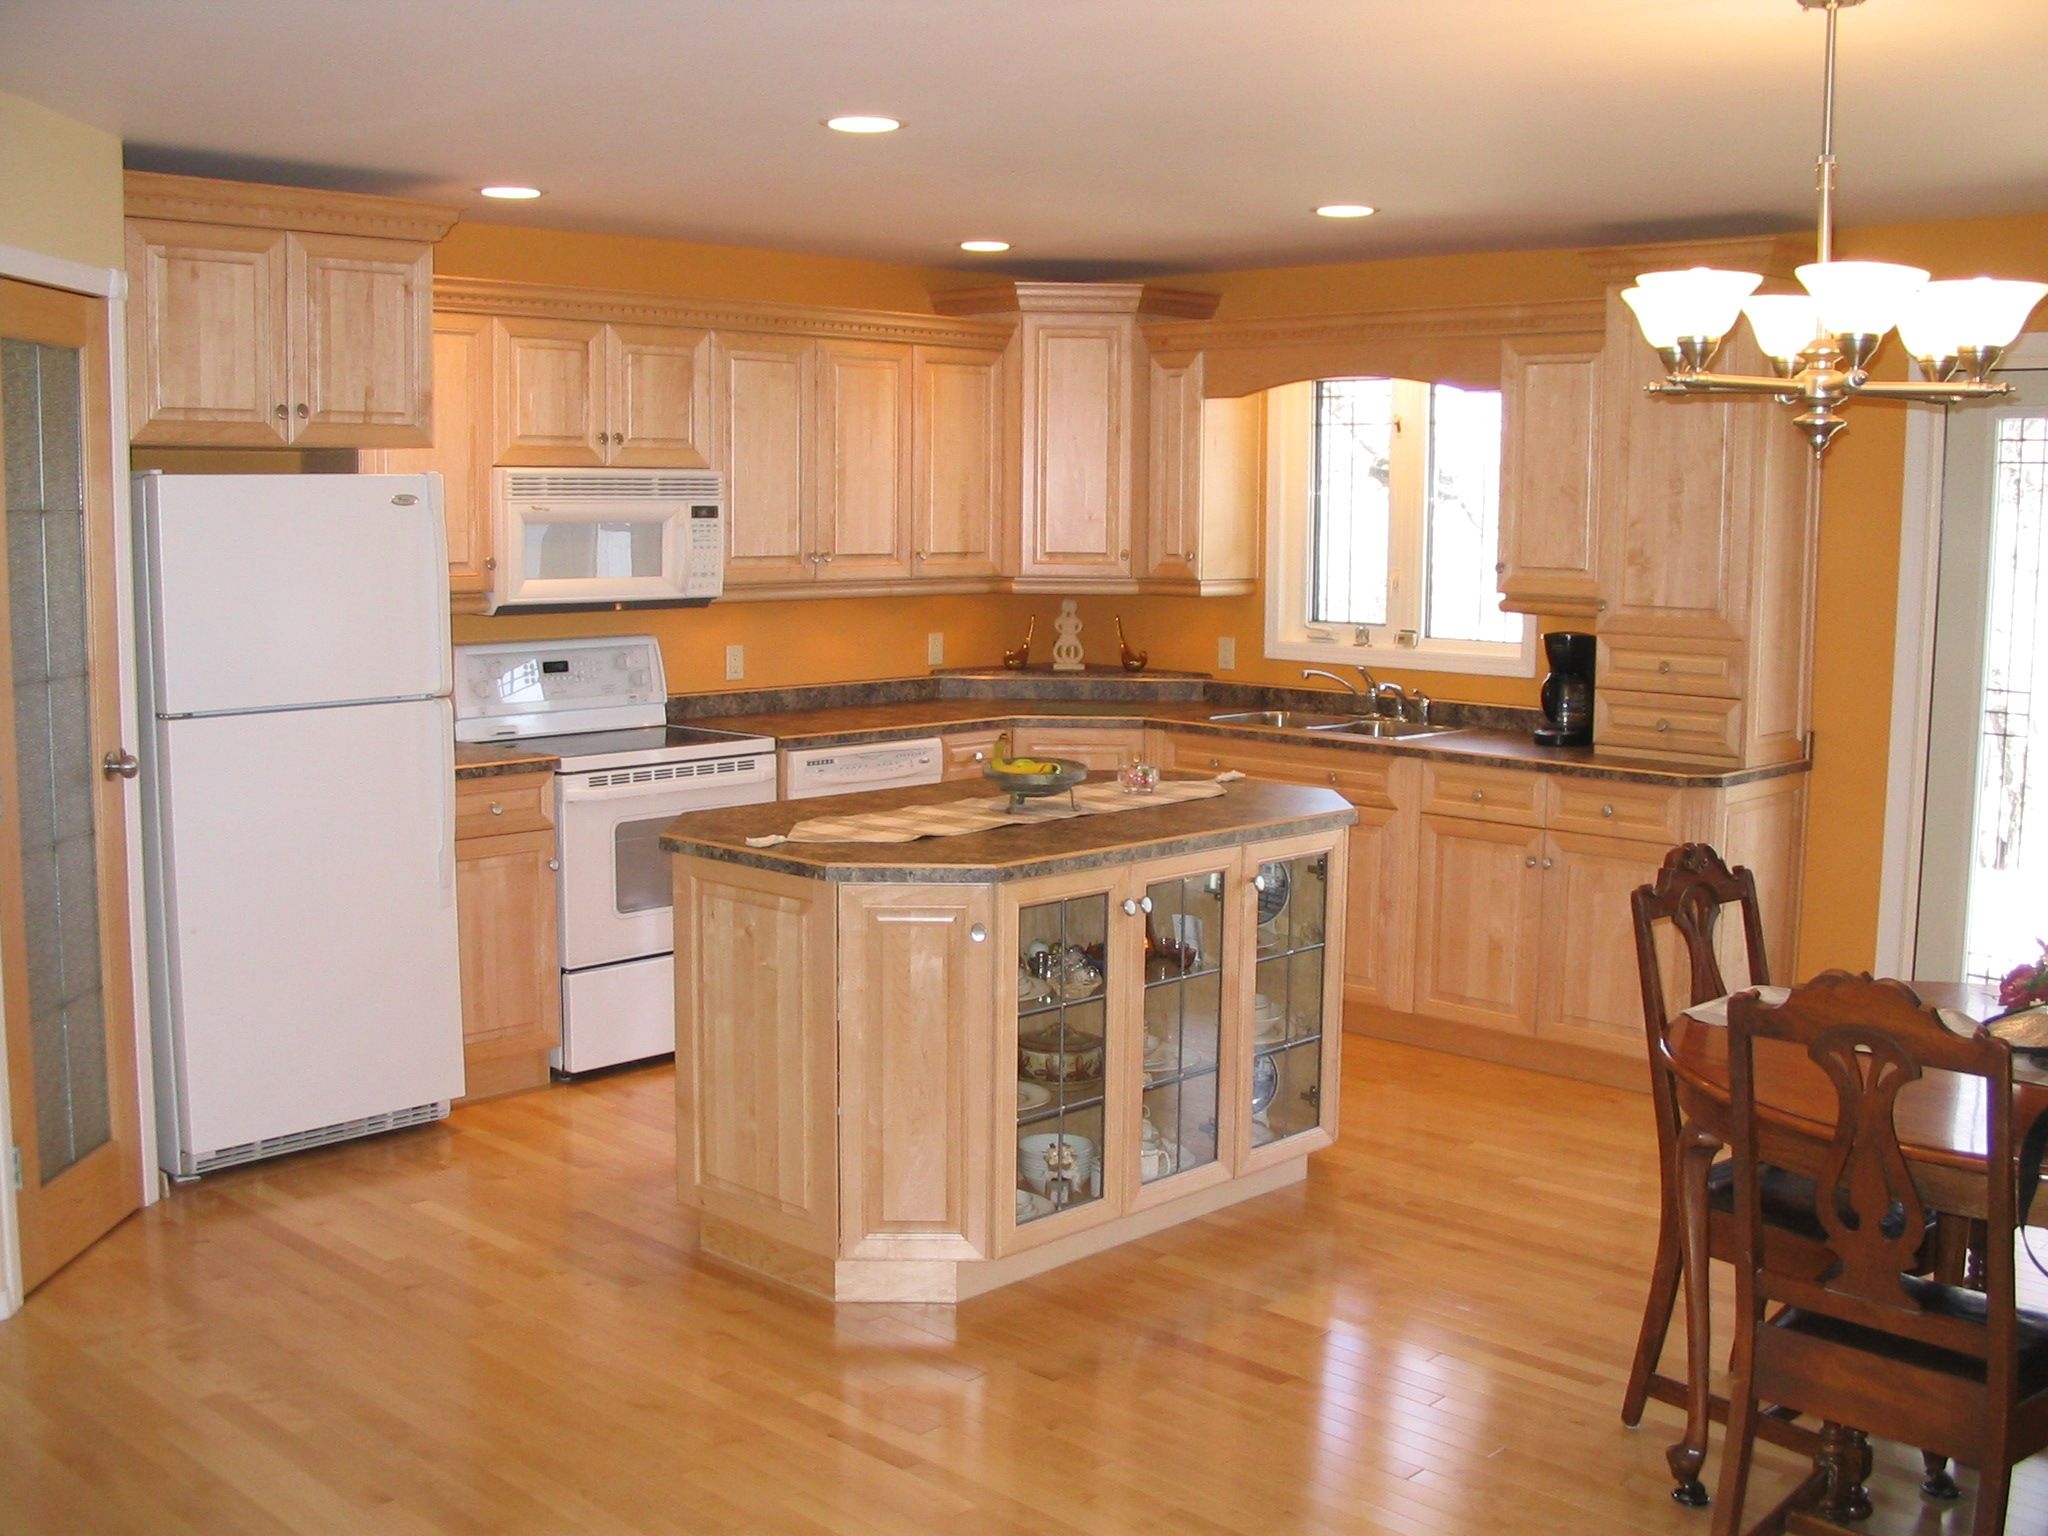 Cabinets: Maple - Natural / Countertops: Formica Laminate ...